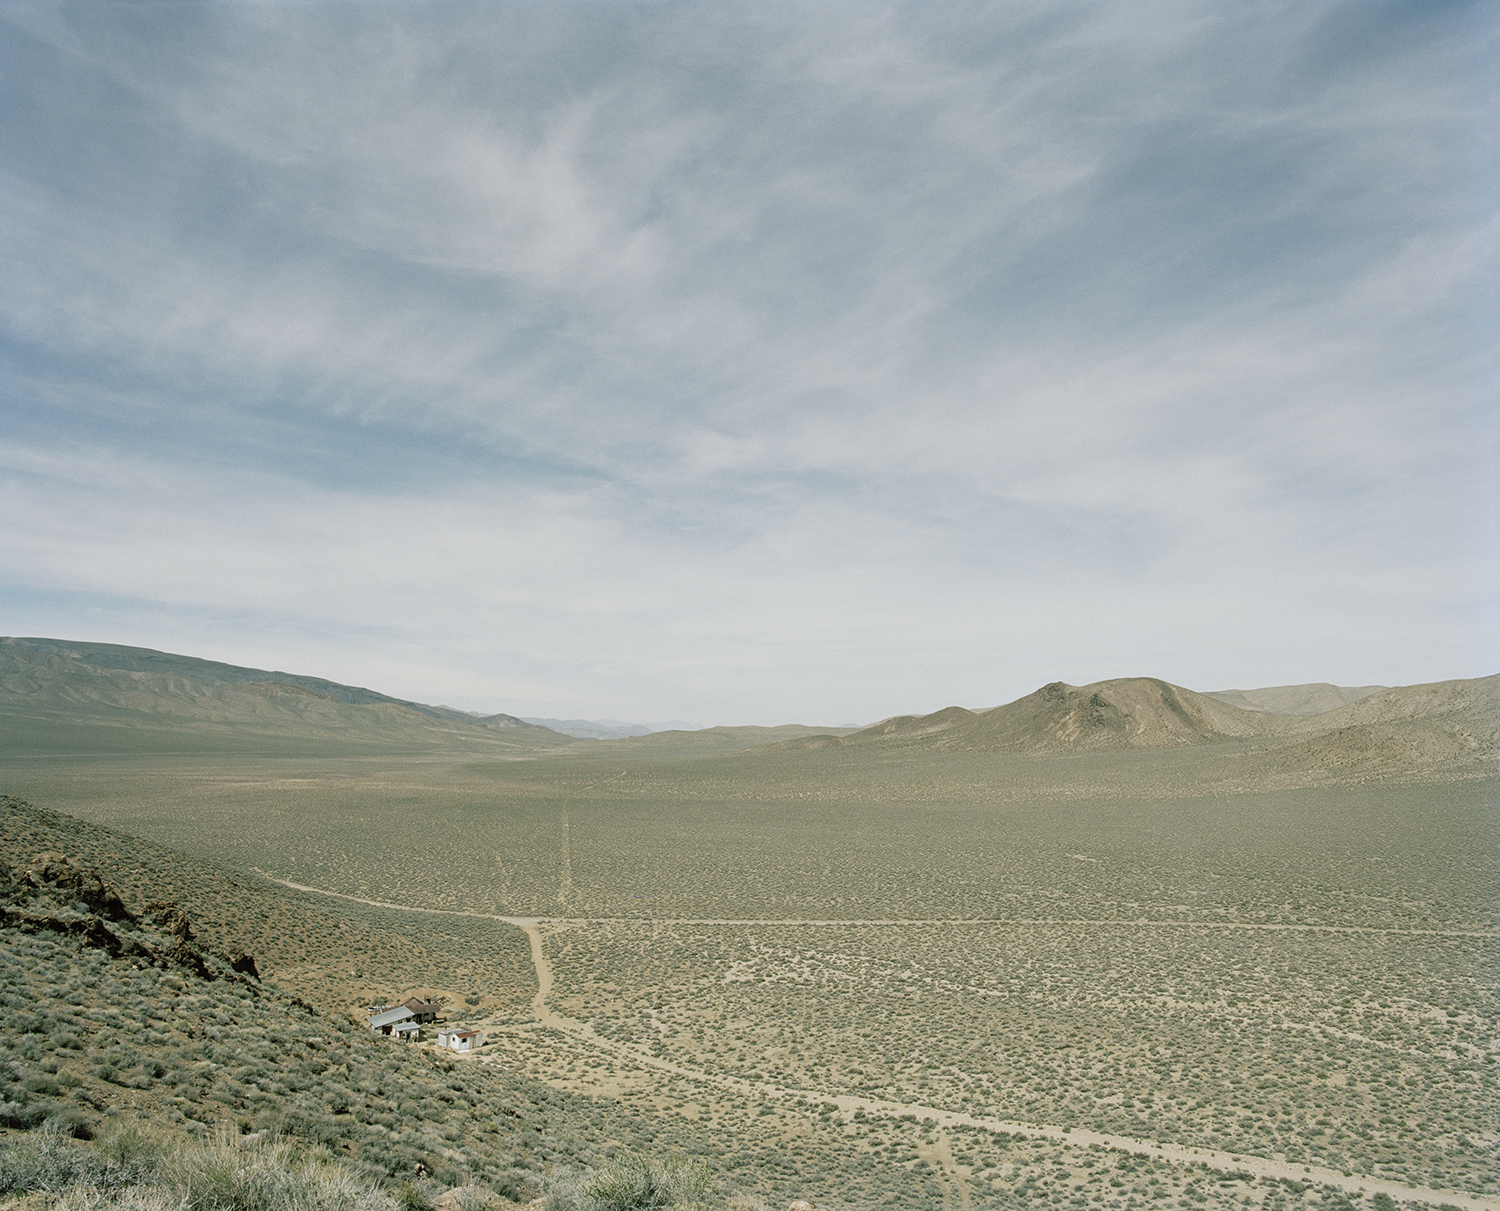 The Aguereberry site, Panamint Range, Inyo County, California  from the series   What makes grass grow in the desert